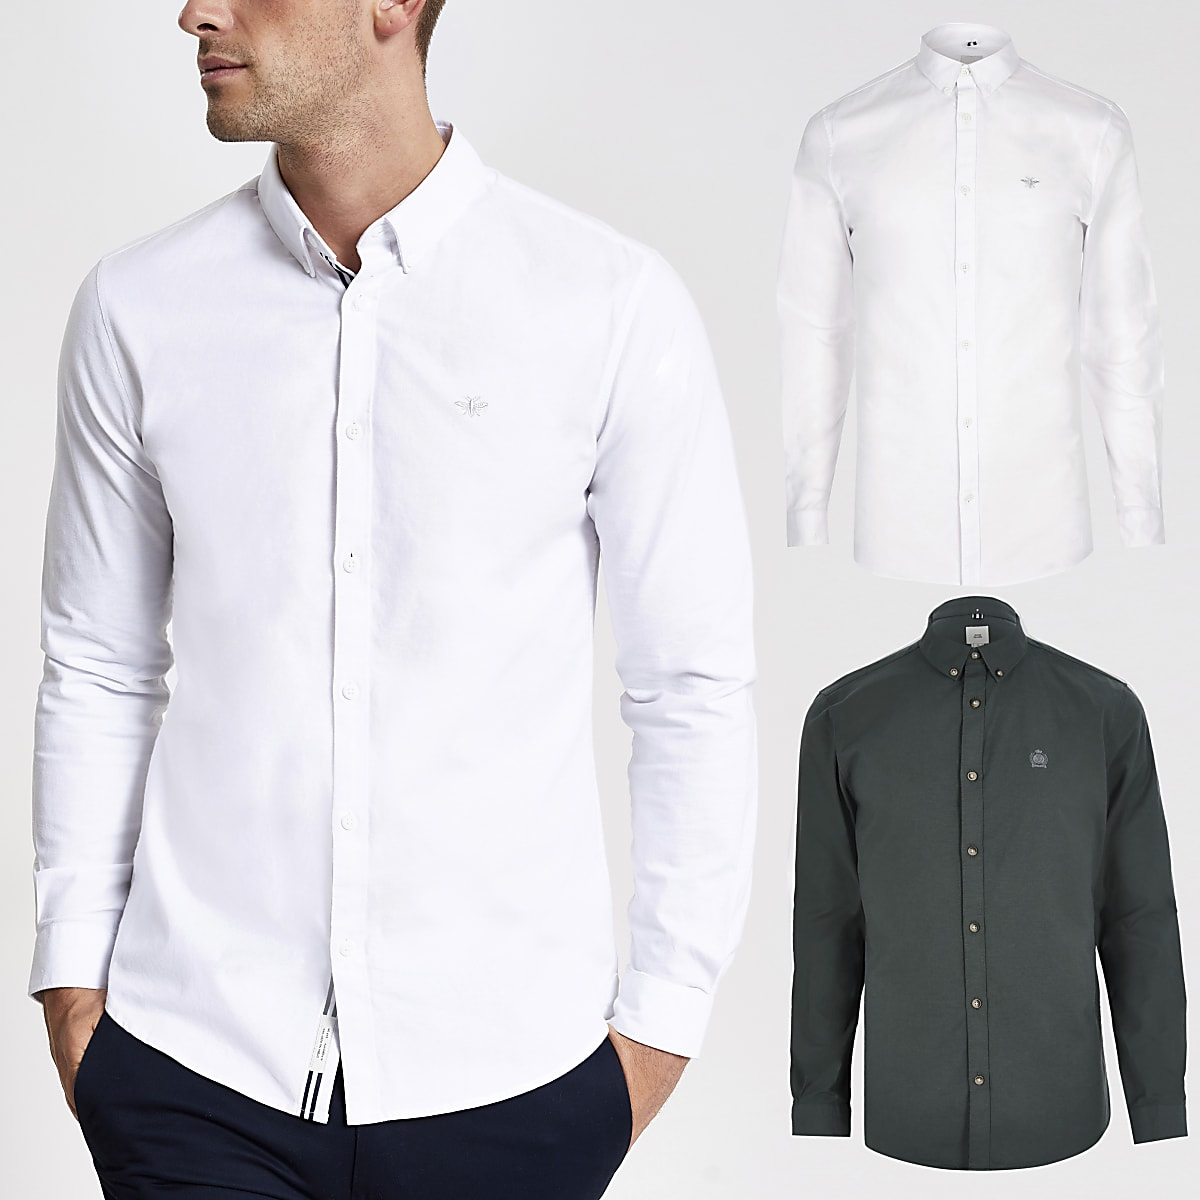 White and sage muscle Oxford shirt 2 pack